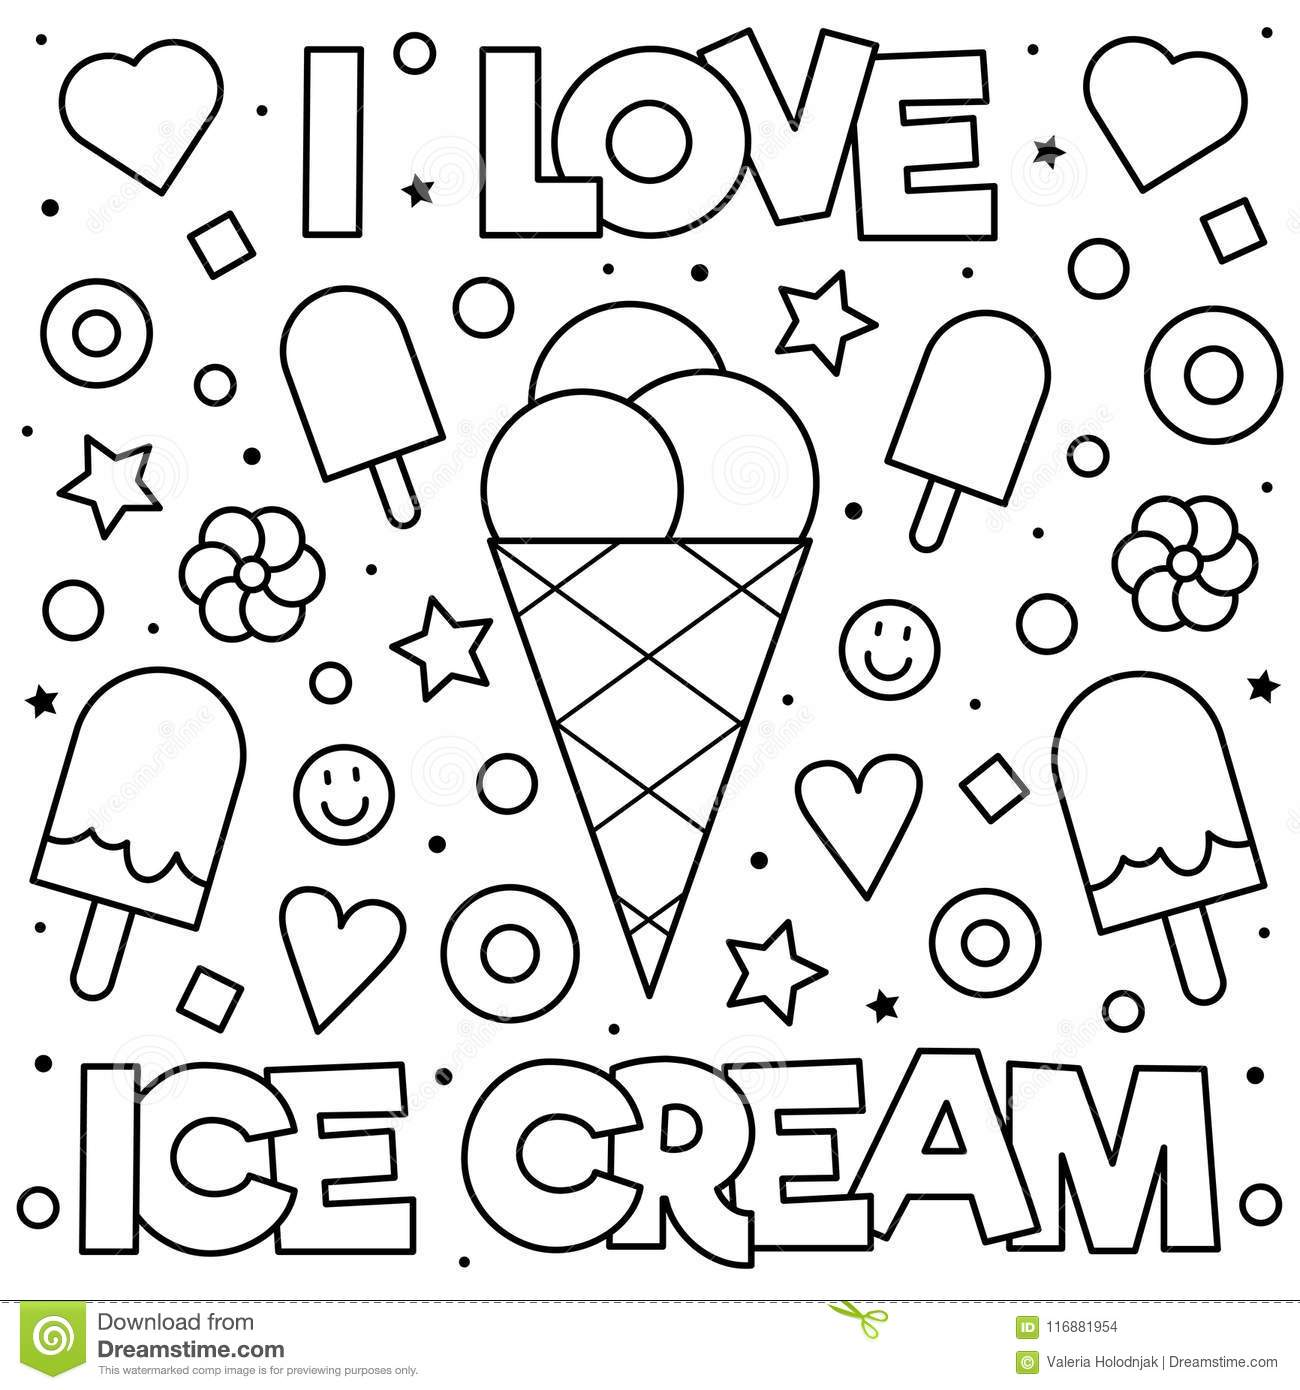 I love ice cream coloring page black and white vector illustration